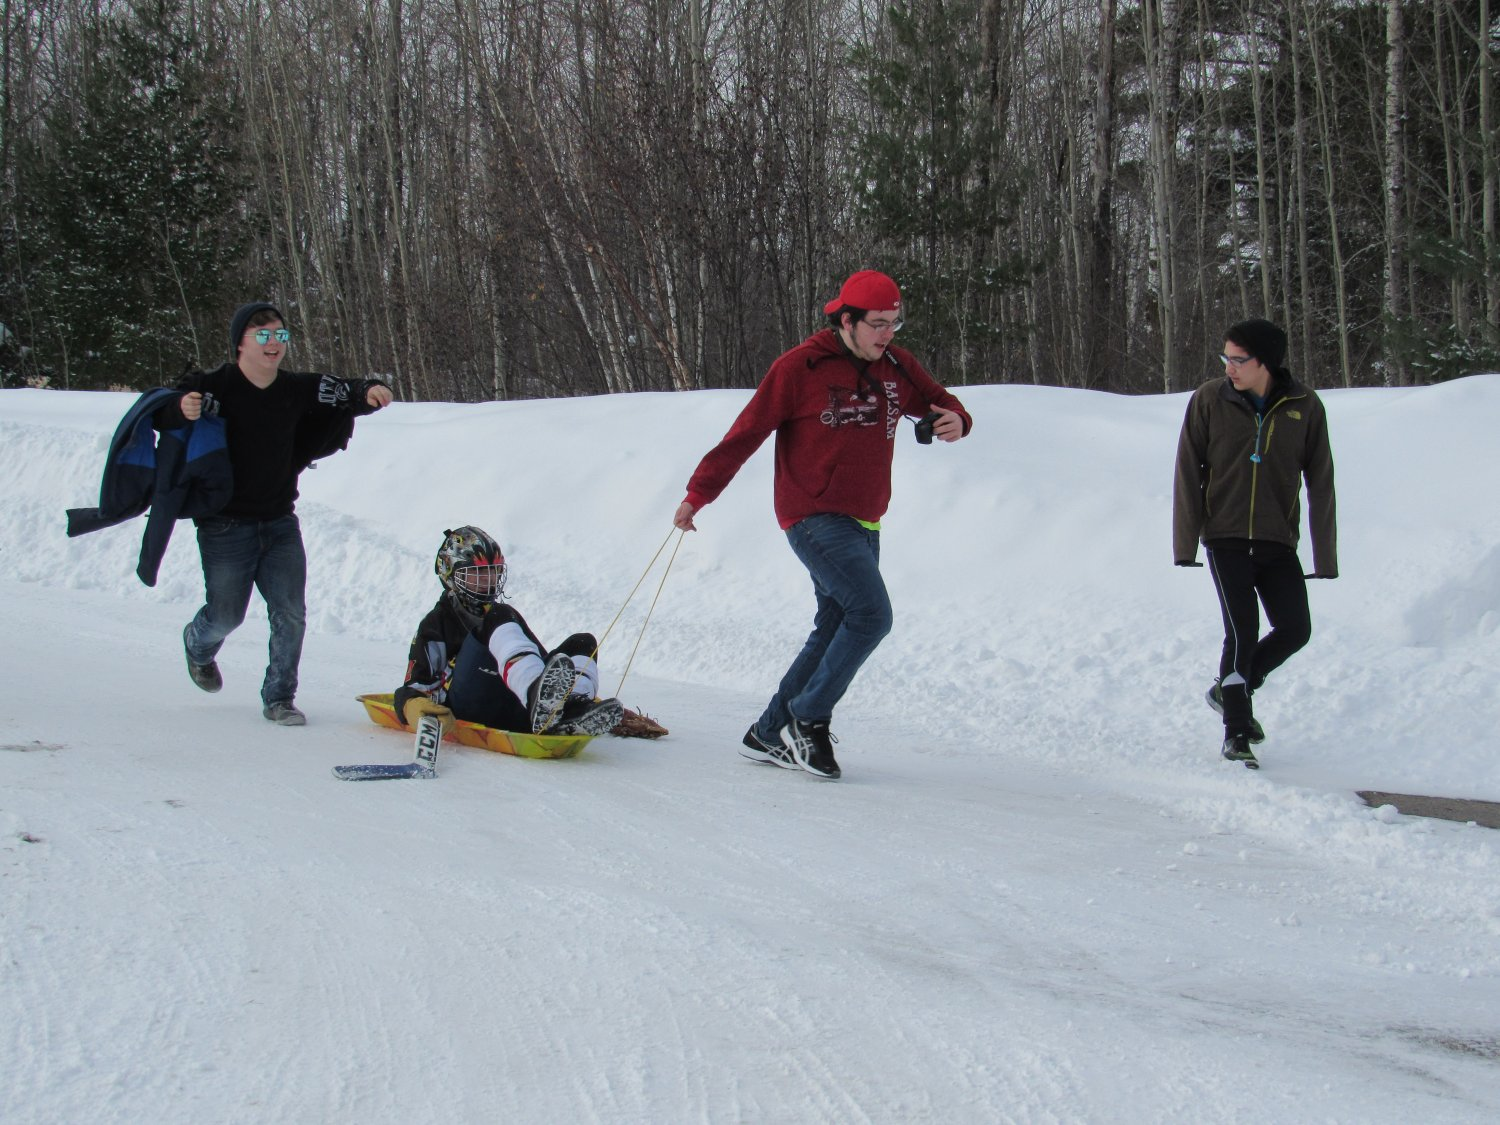 at our annual Winter Games